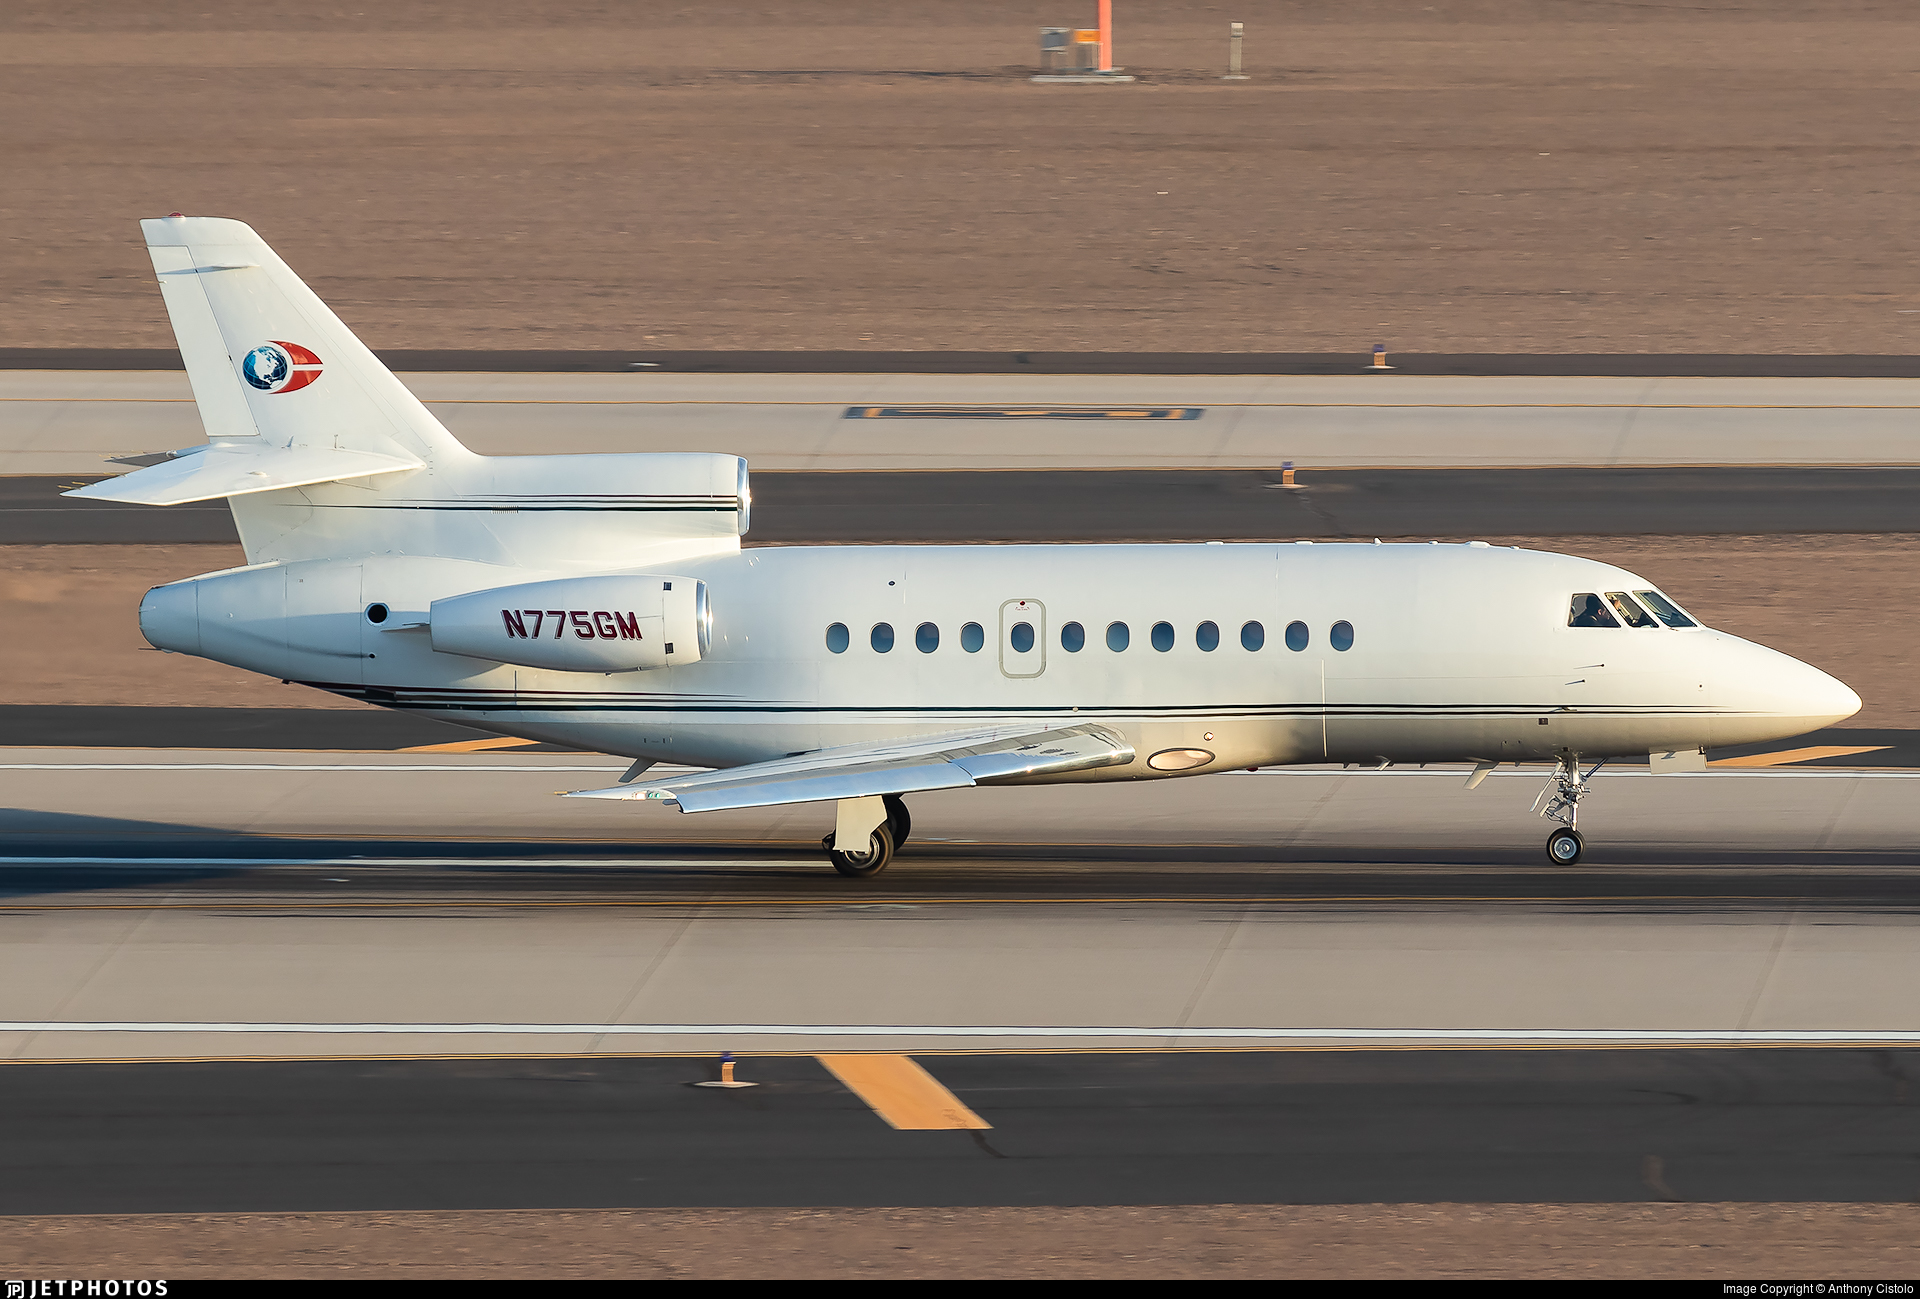 N775GM - Dassault Falcon 900 - Private